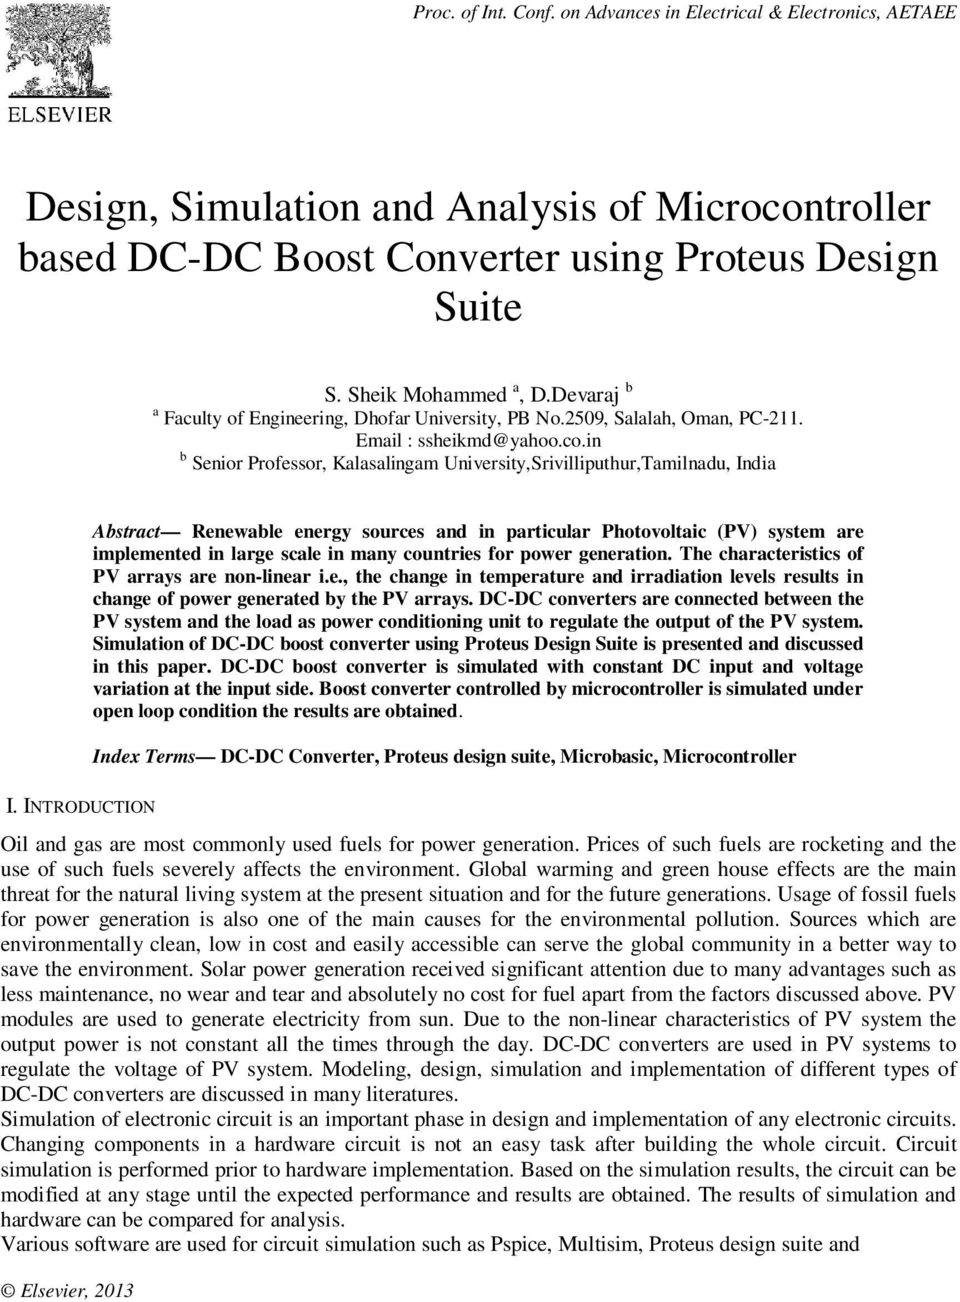 Design Simulation And Analysis Of Microcontroller Based Dc Boost Proteus The Complete Electronics System In B Senior Professor Kalasalingam Universitysrivilliputhurtamilnadu India Abstract Renewable Energy